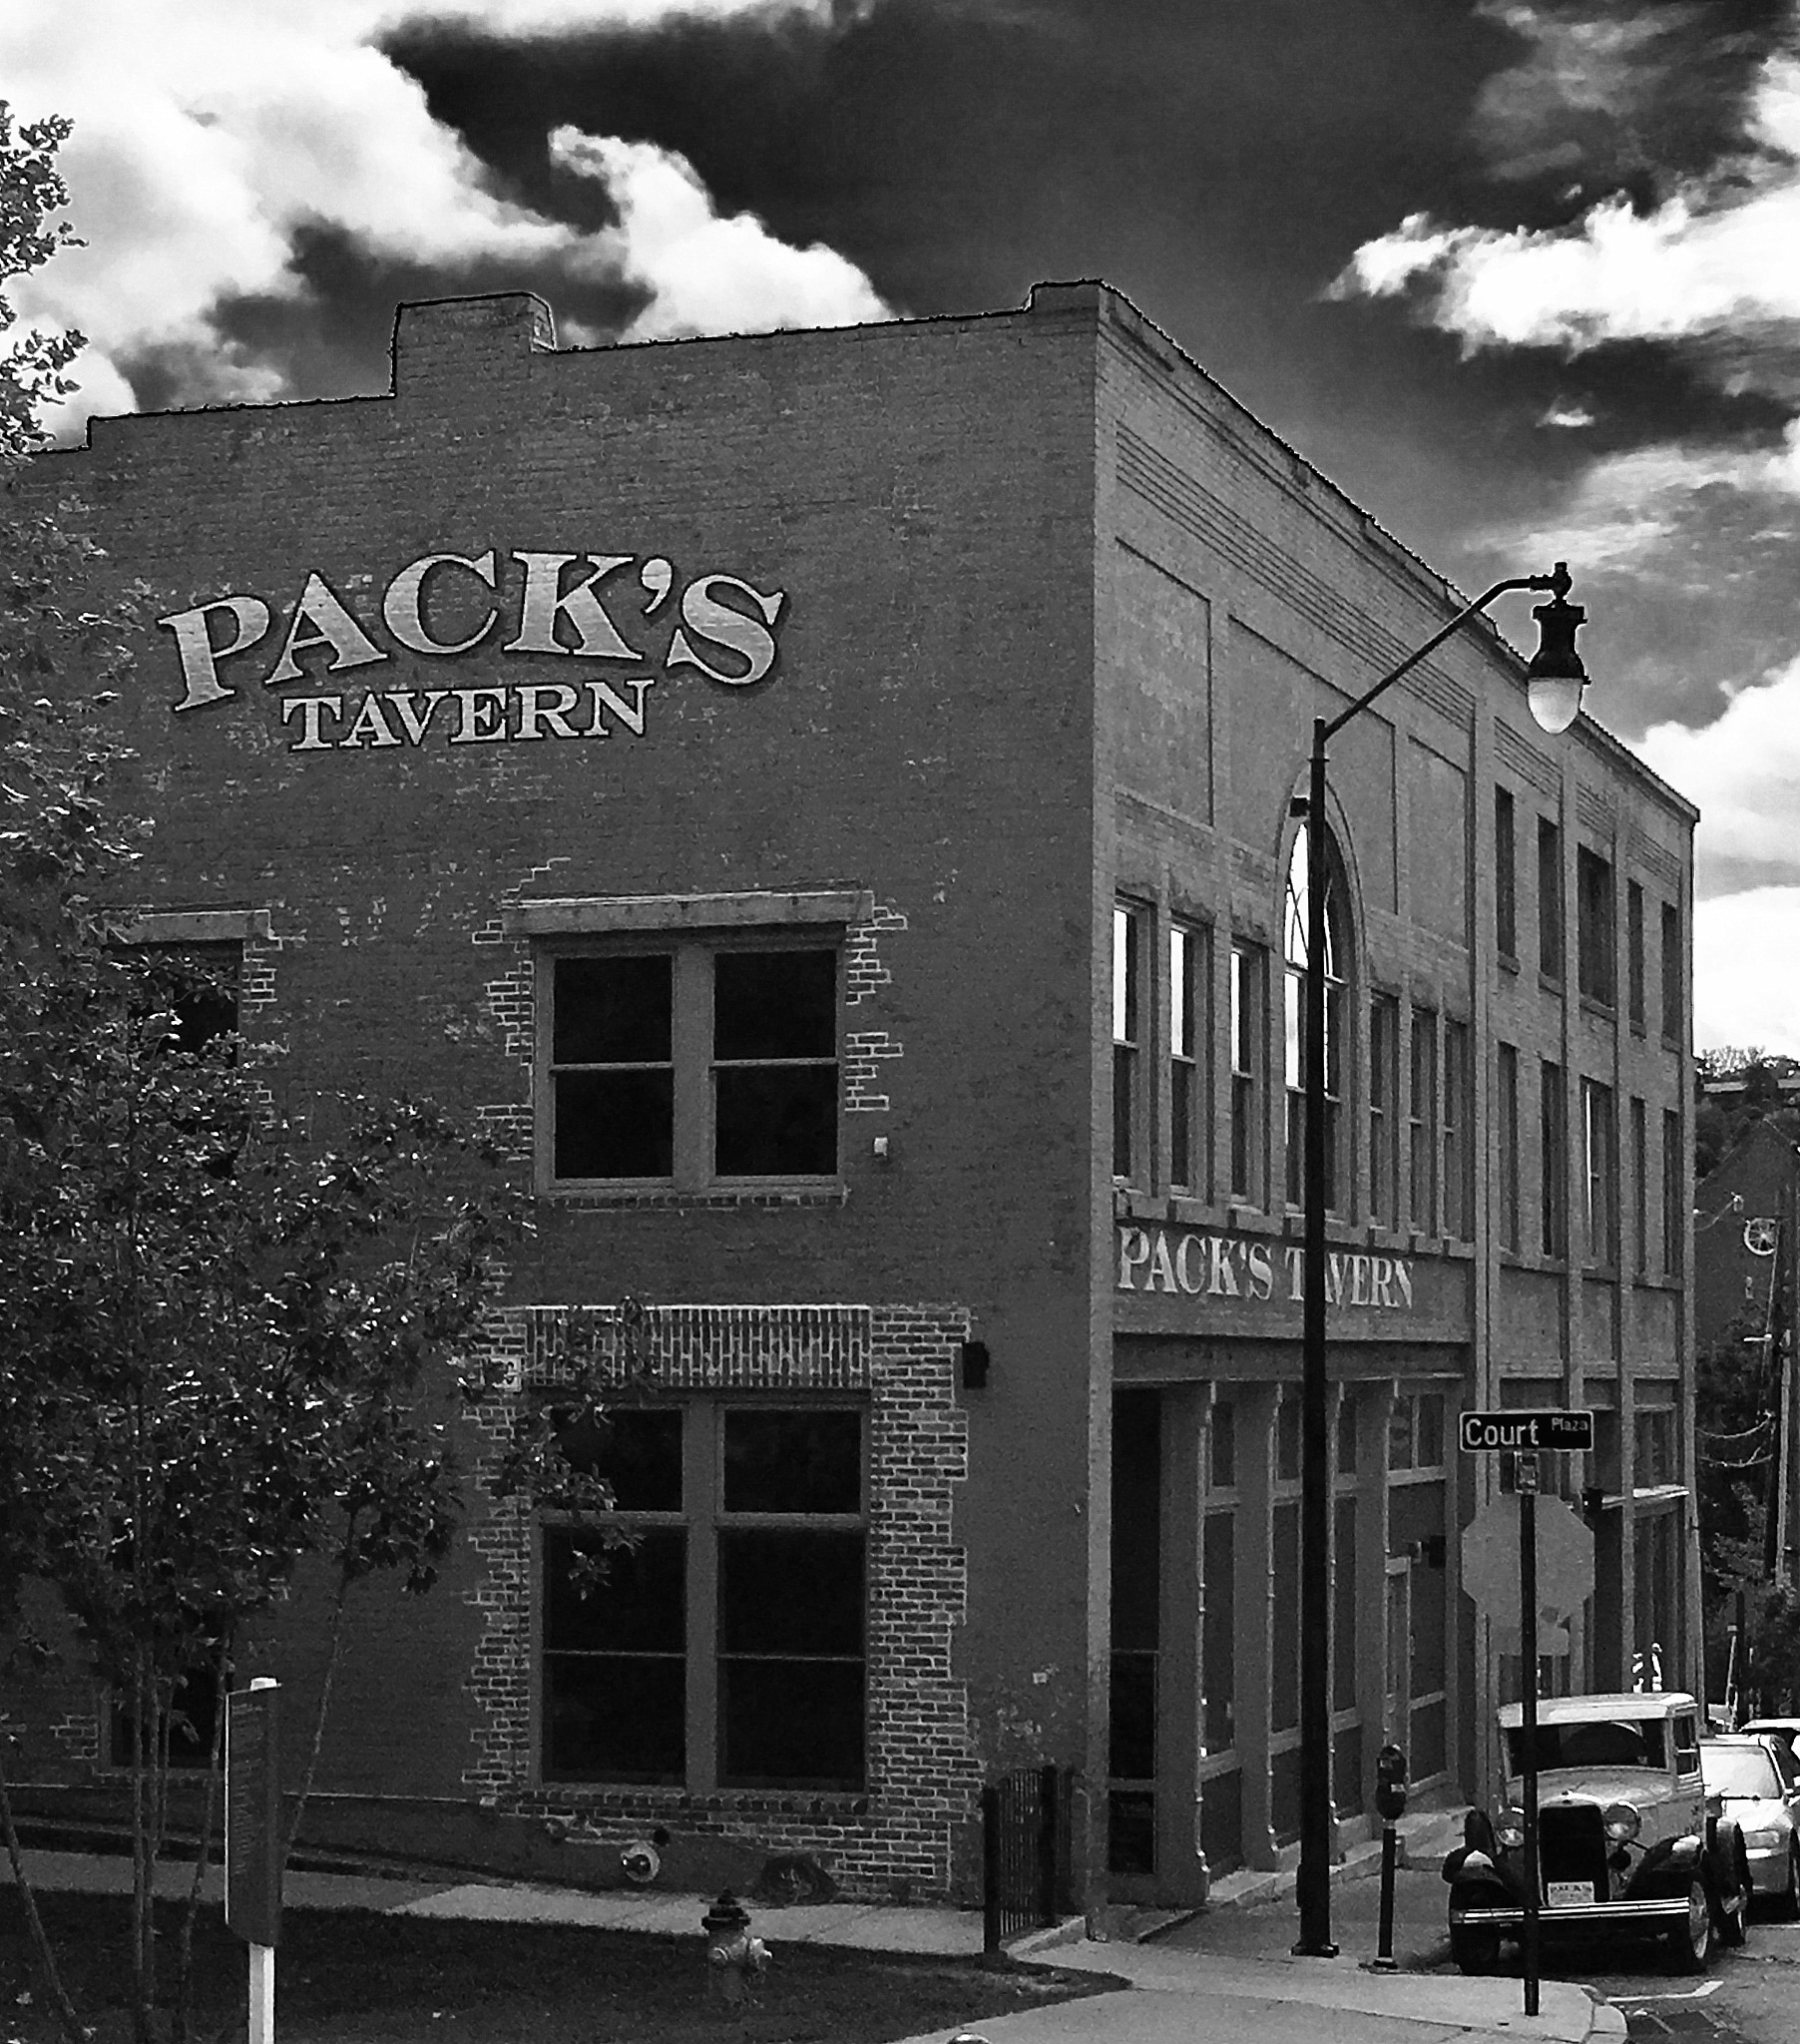 Pack's Tavern by becky.c.jones.3